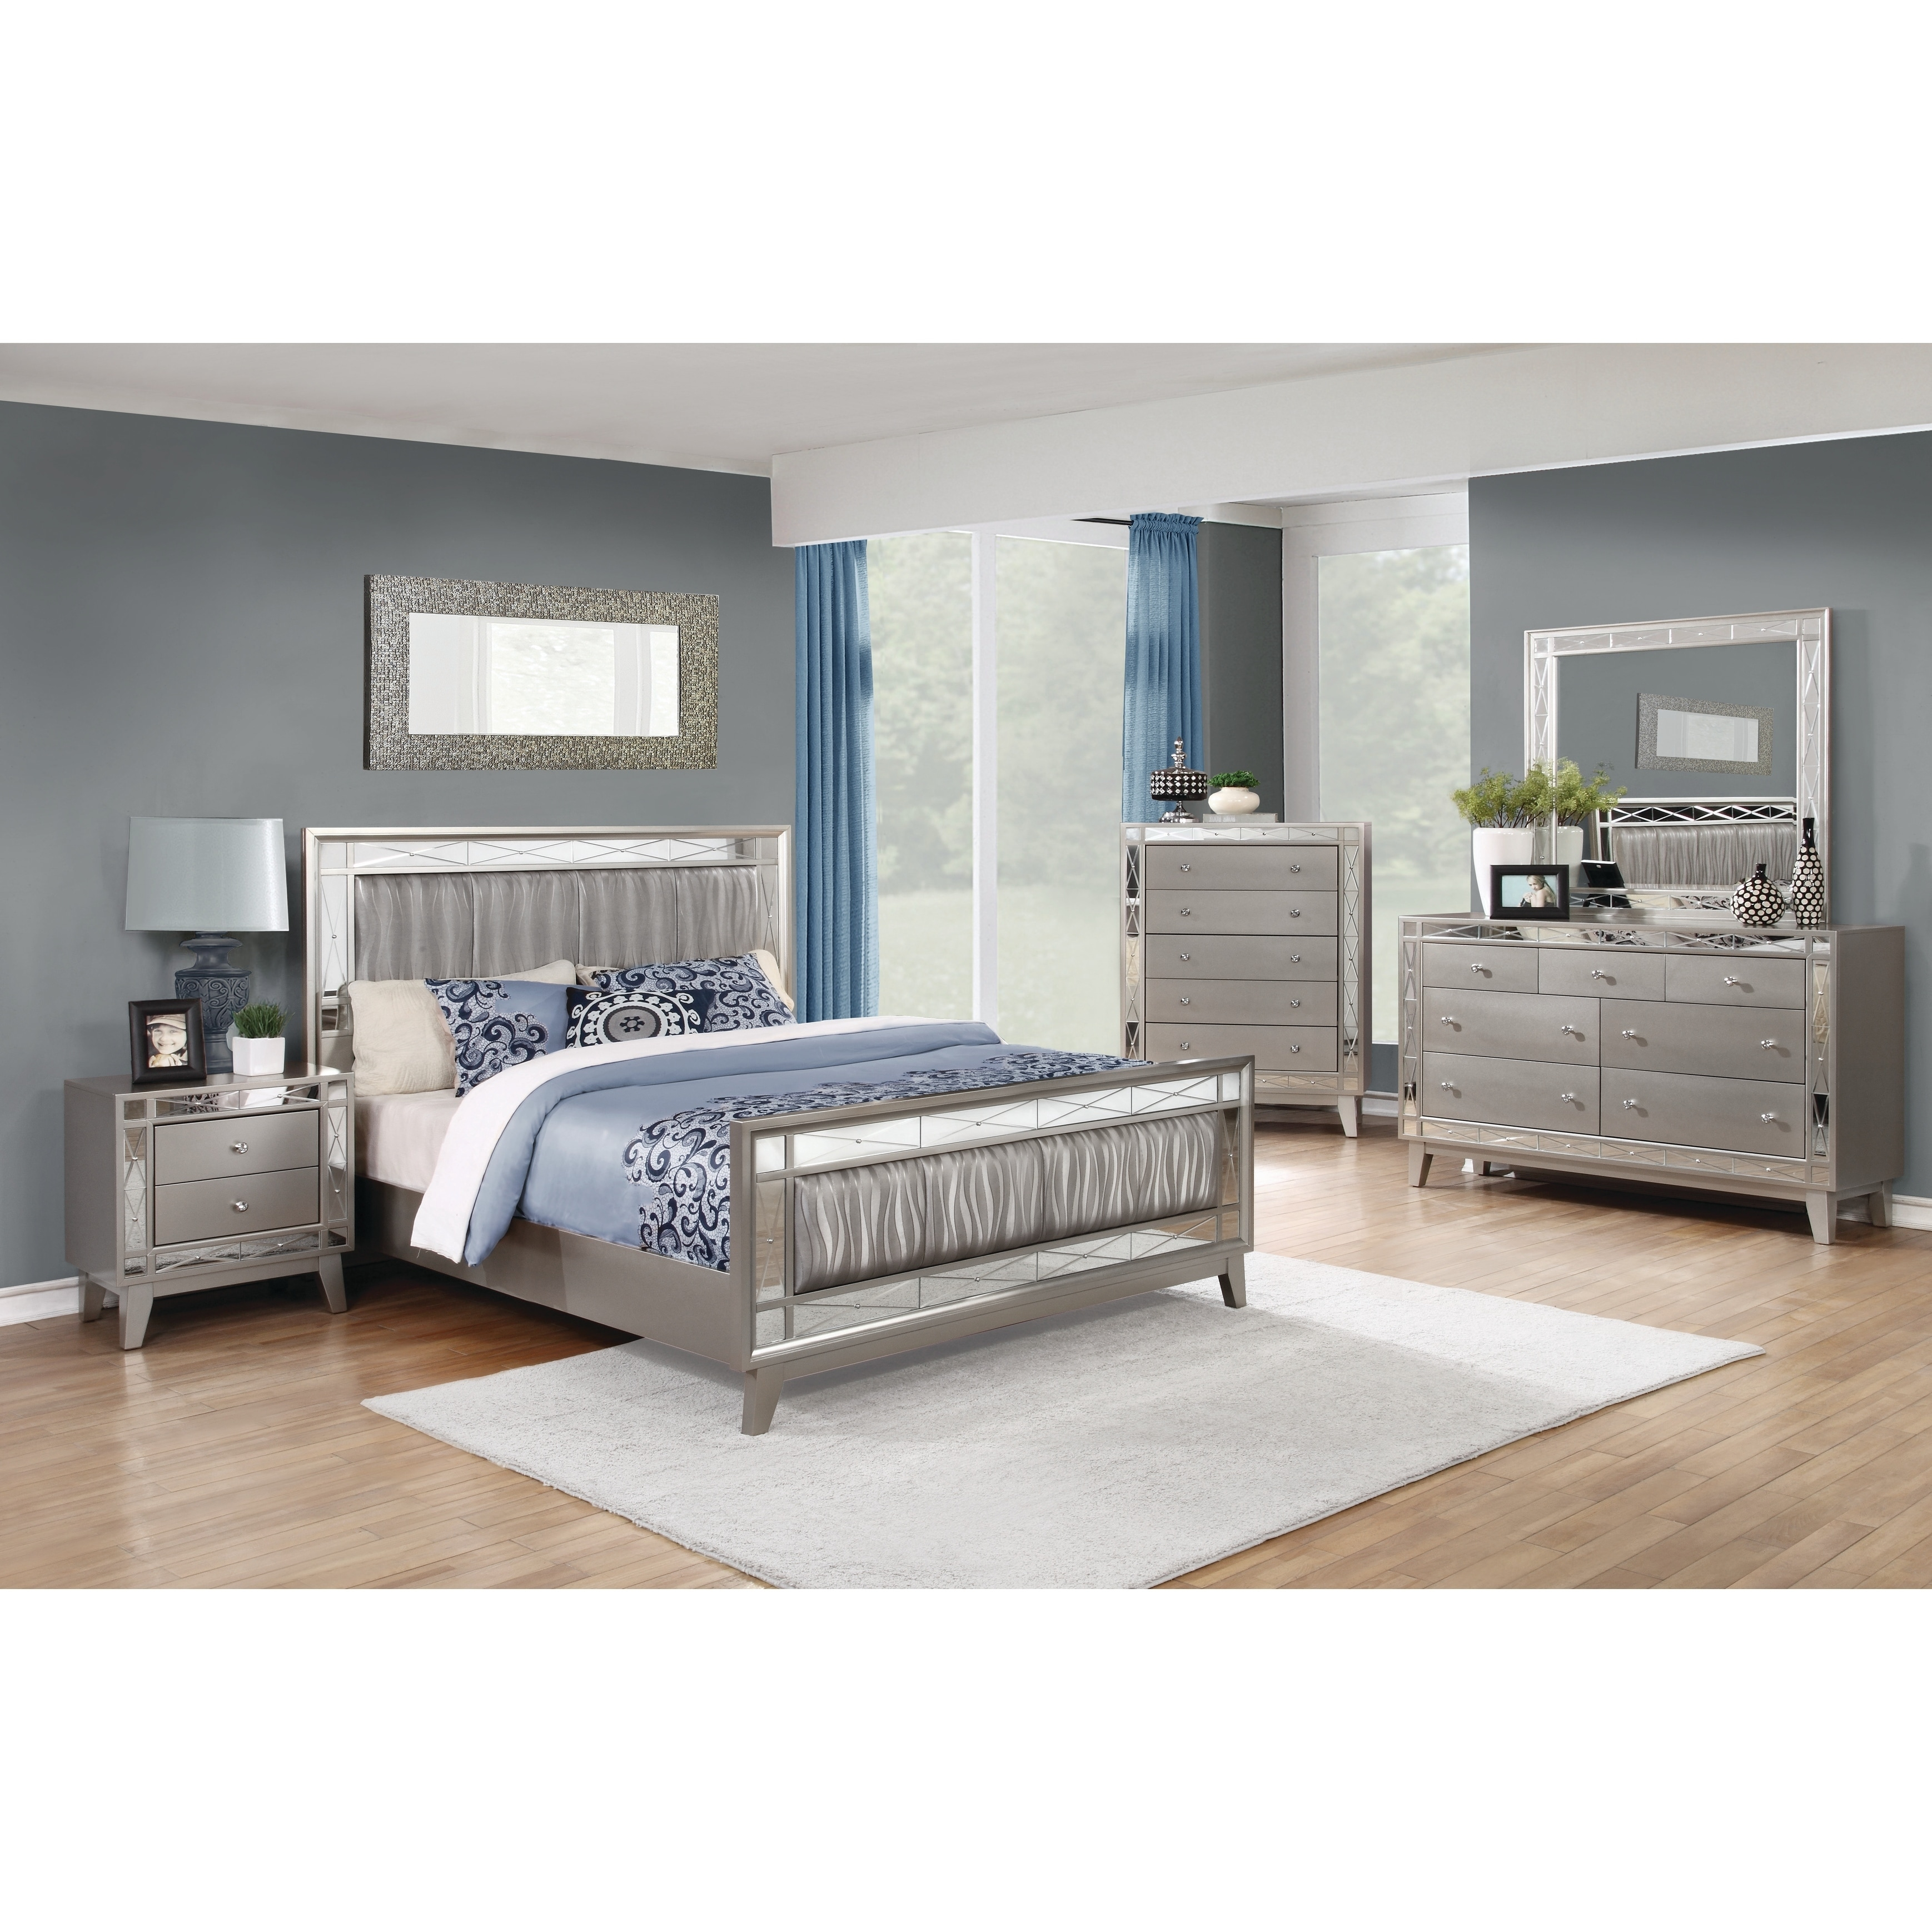 Silver Orchid Barriscale Contemporary Metallic 4-piece Bedroom Set